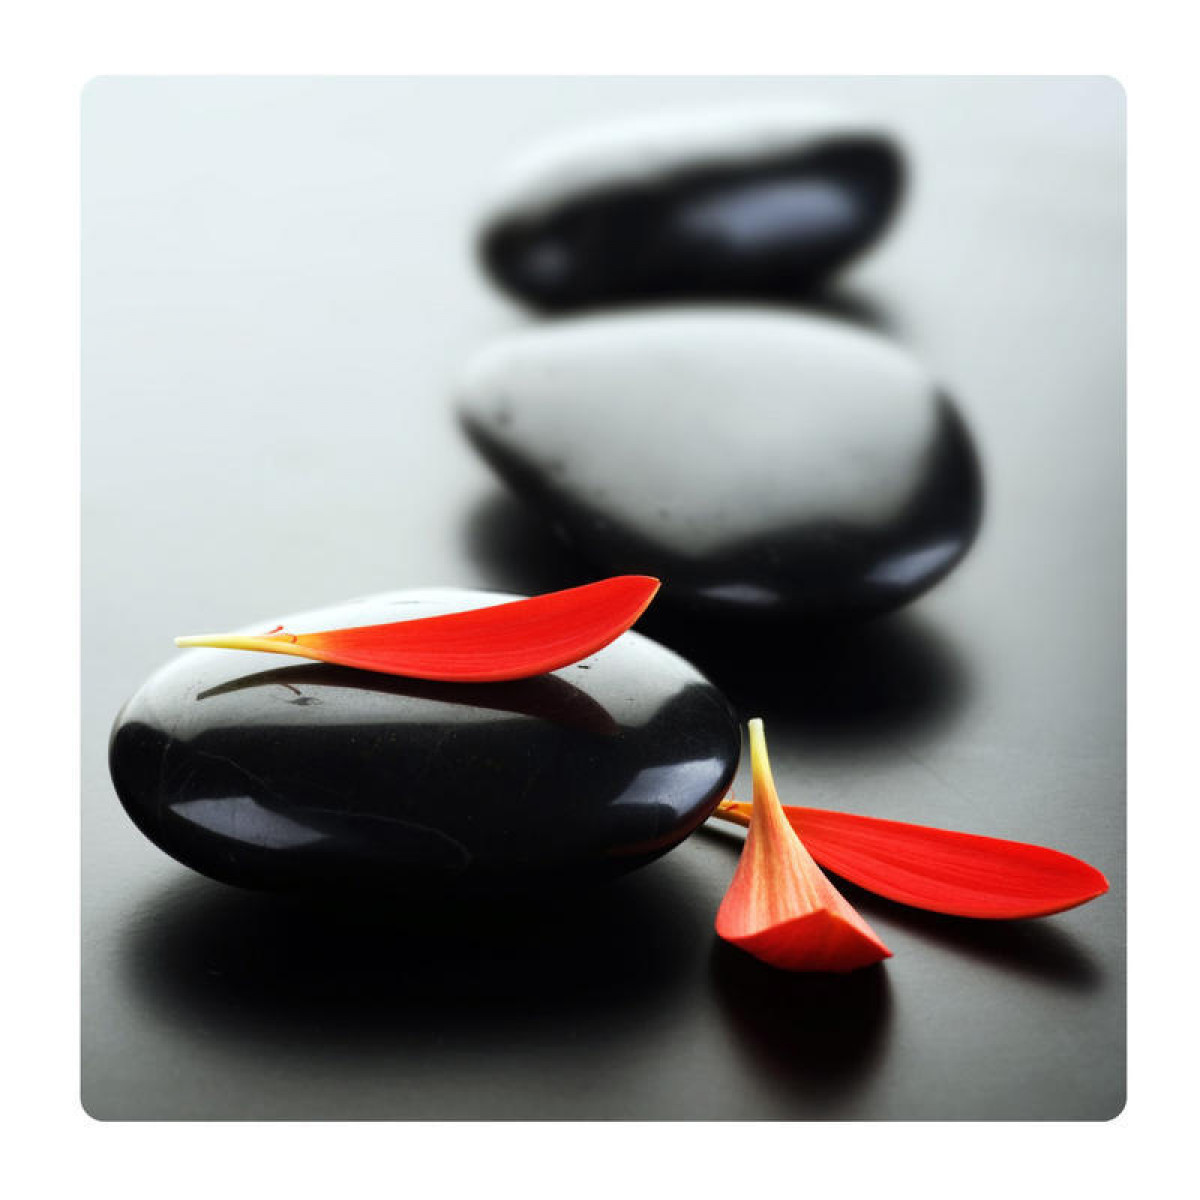 Black rocks and petals, Photo pour accrocher au mur faite en plexiglass 19 x 19 cm